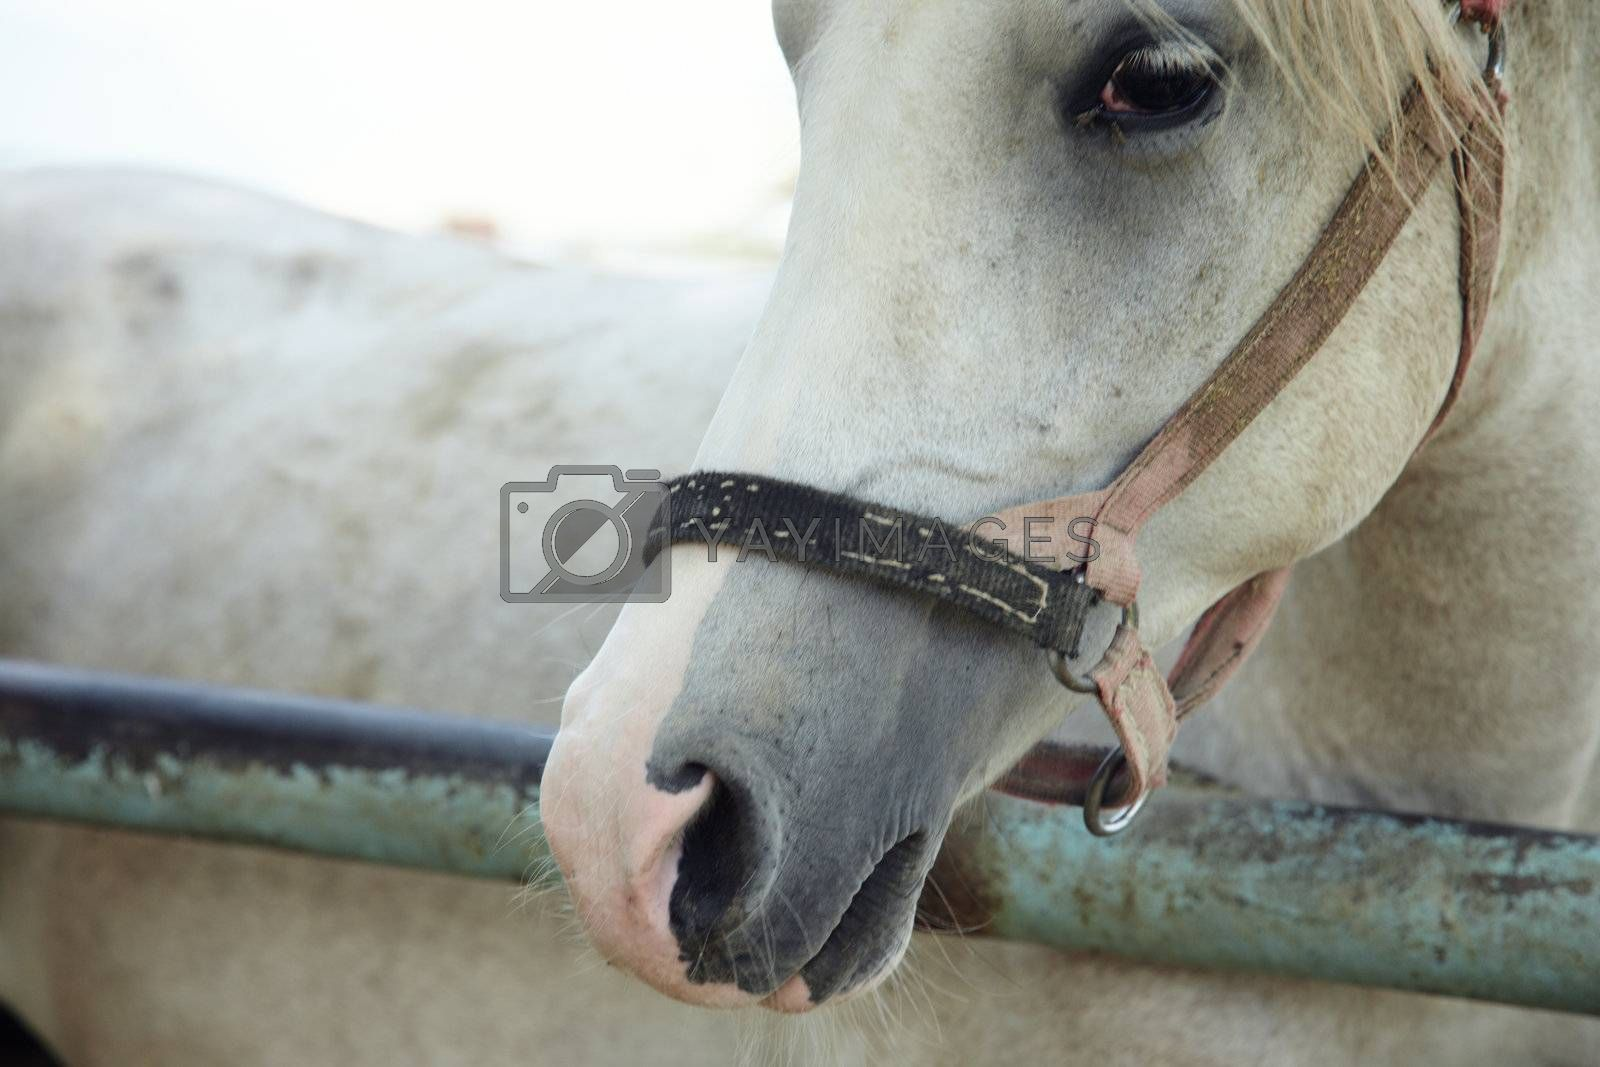 Single white horse in the stable. Horizontal headshot with natural light and colors